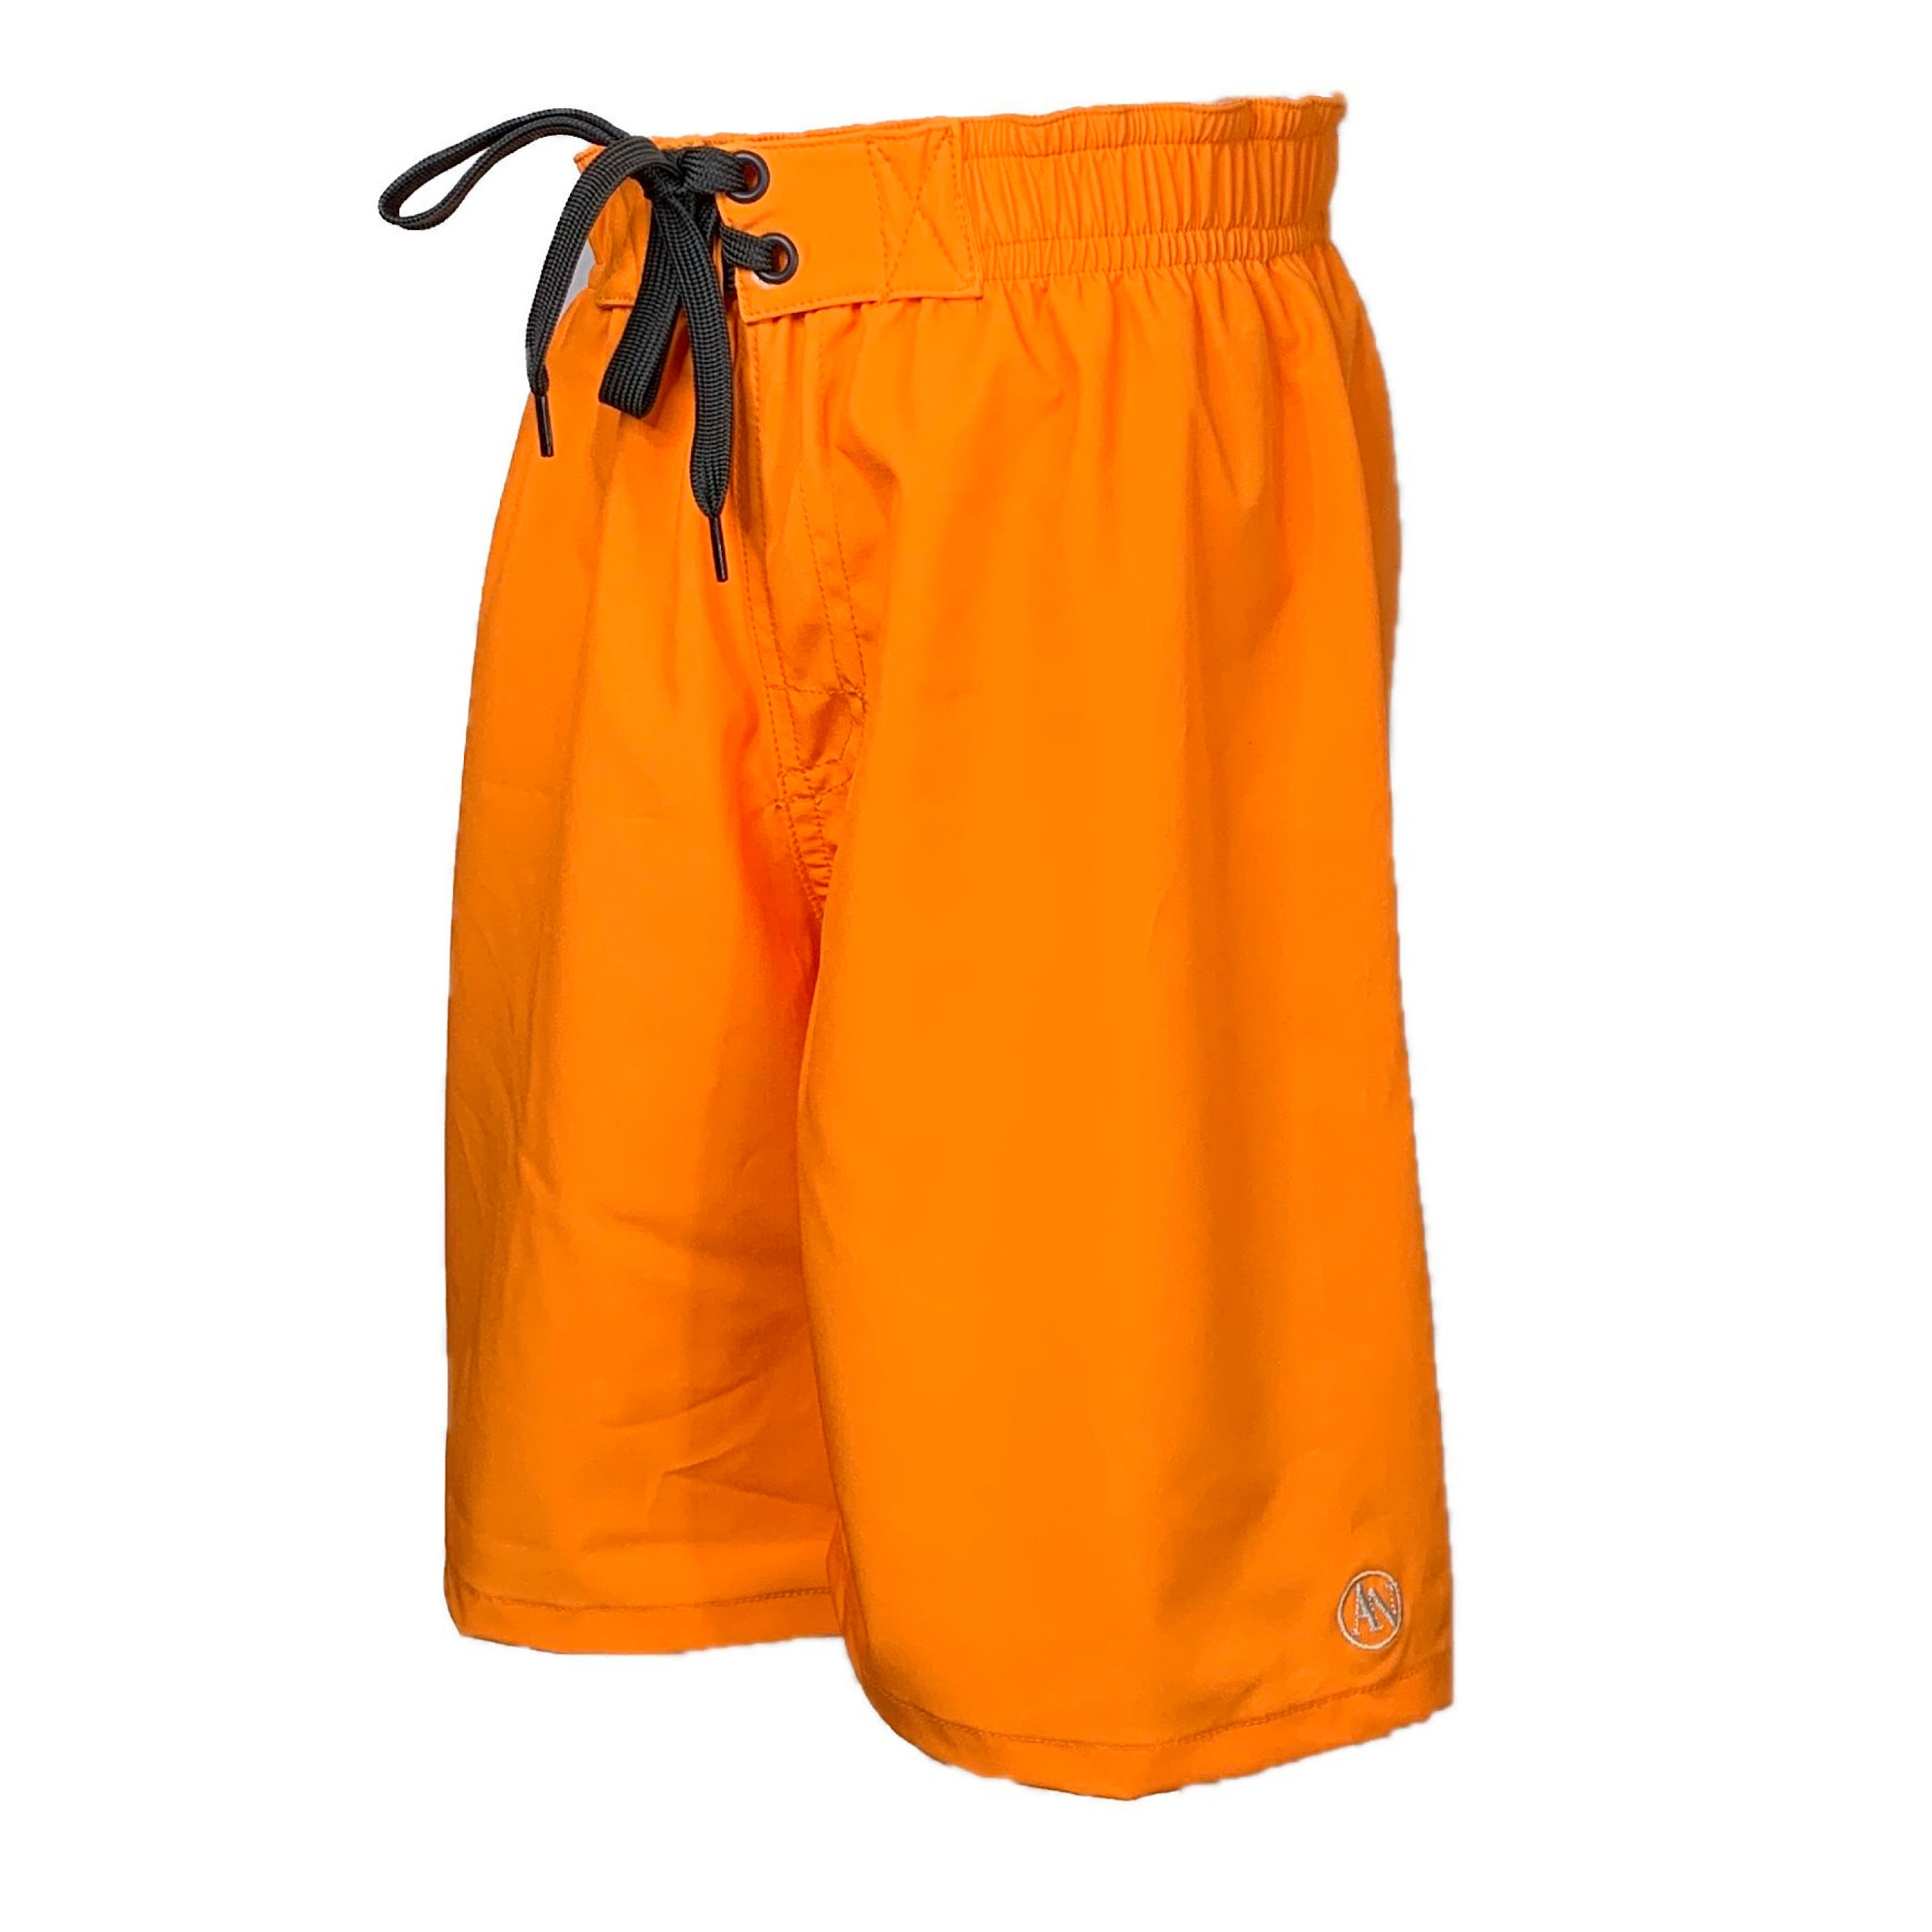 UPF Swim Trunks for Boys - AMBERNOON